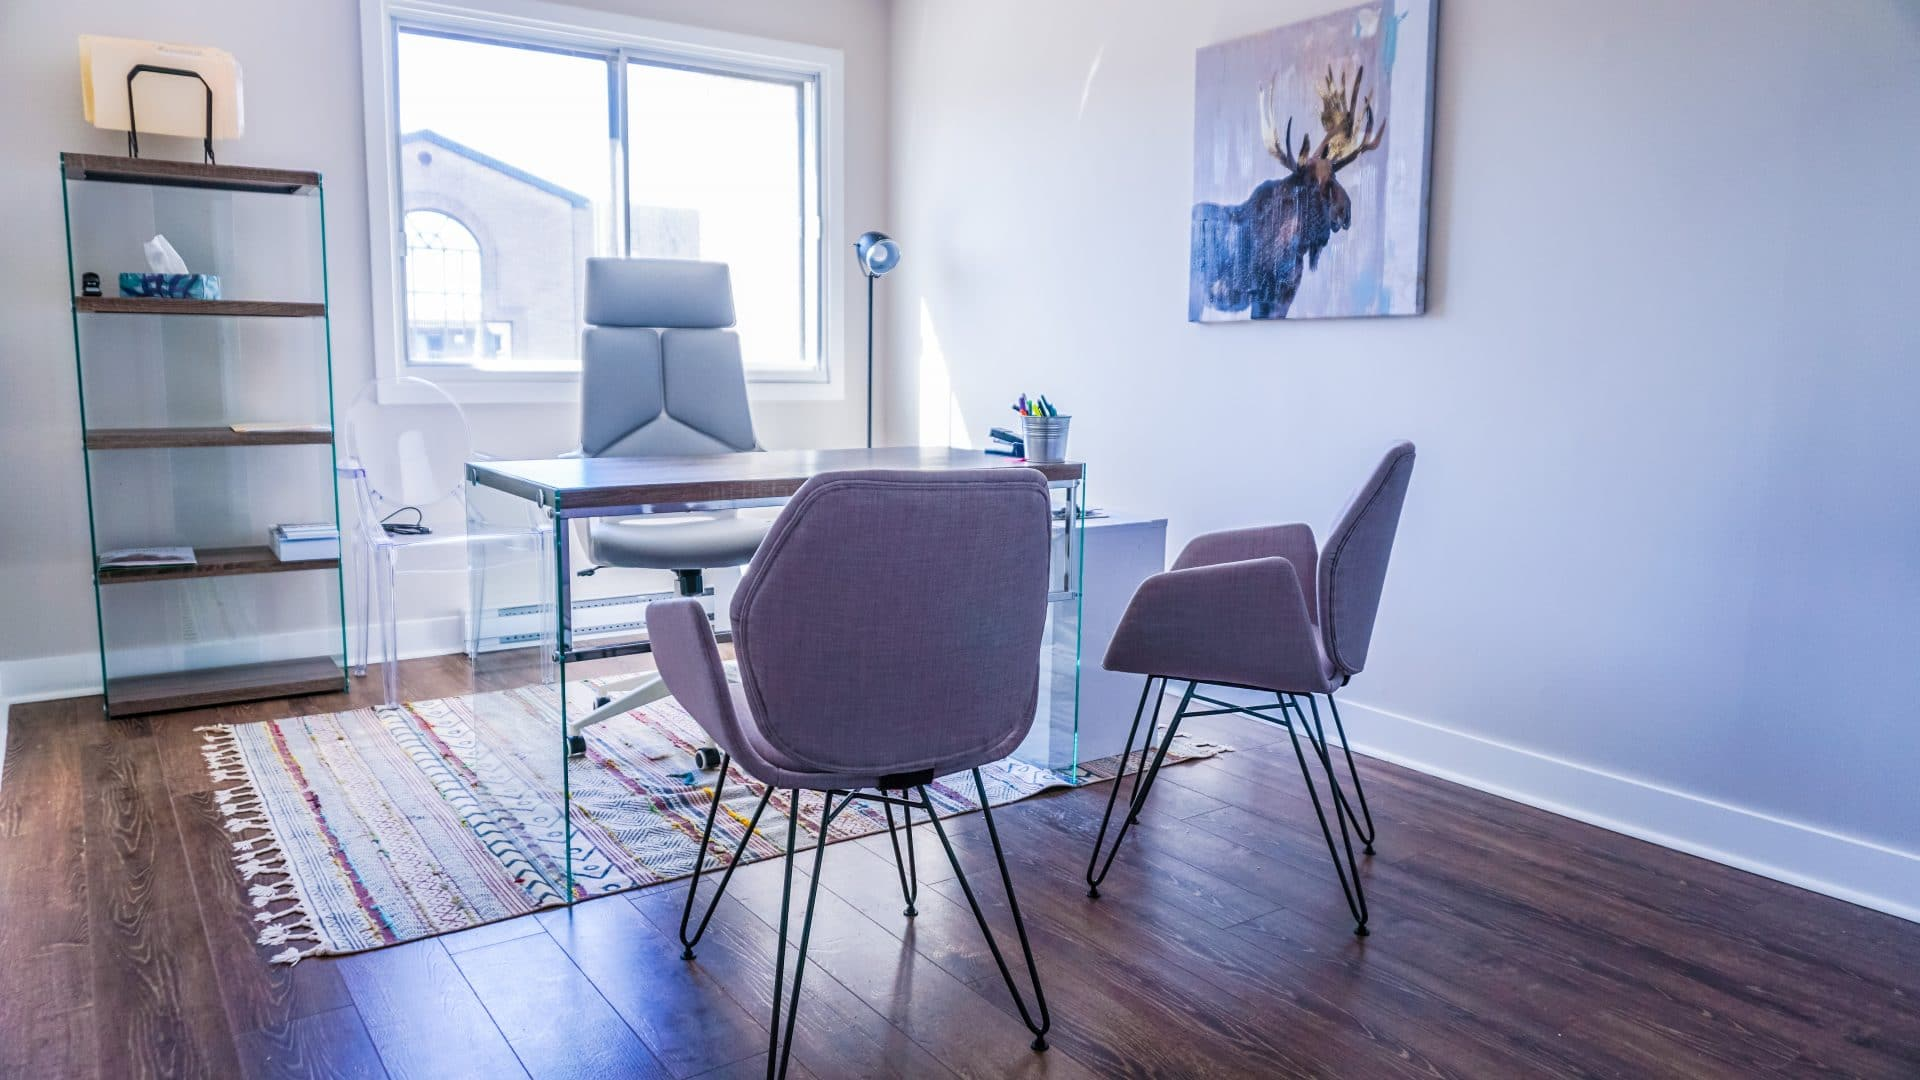 Residence Vanier - Appartement pour personnes agees - 004